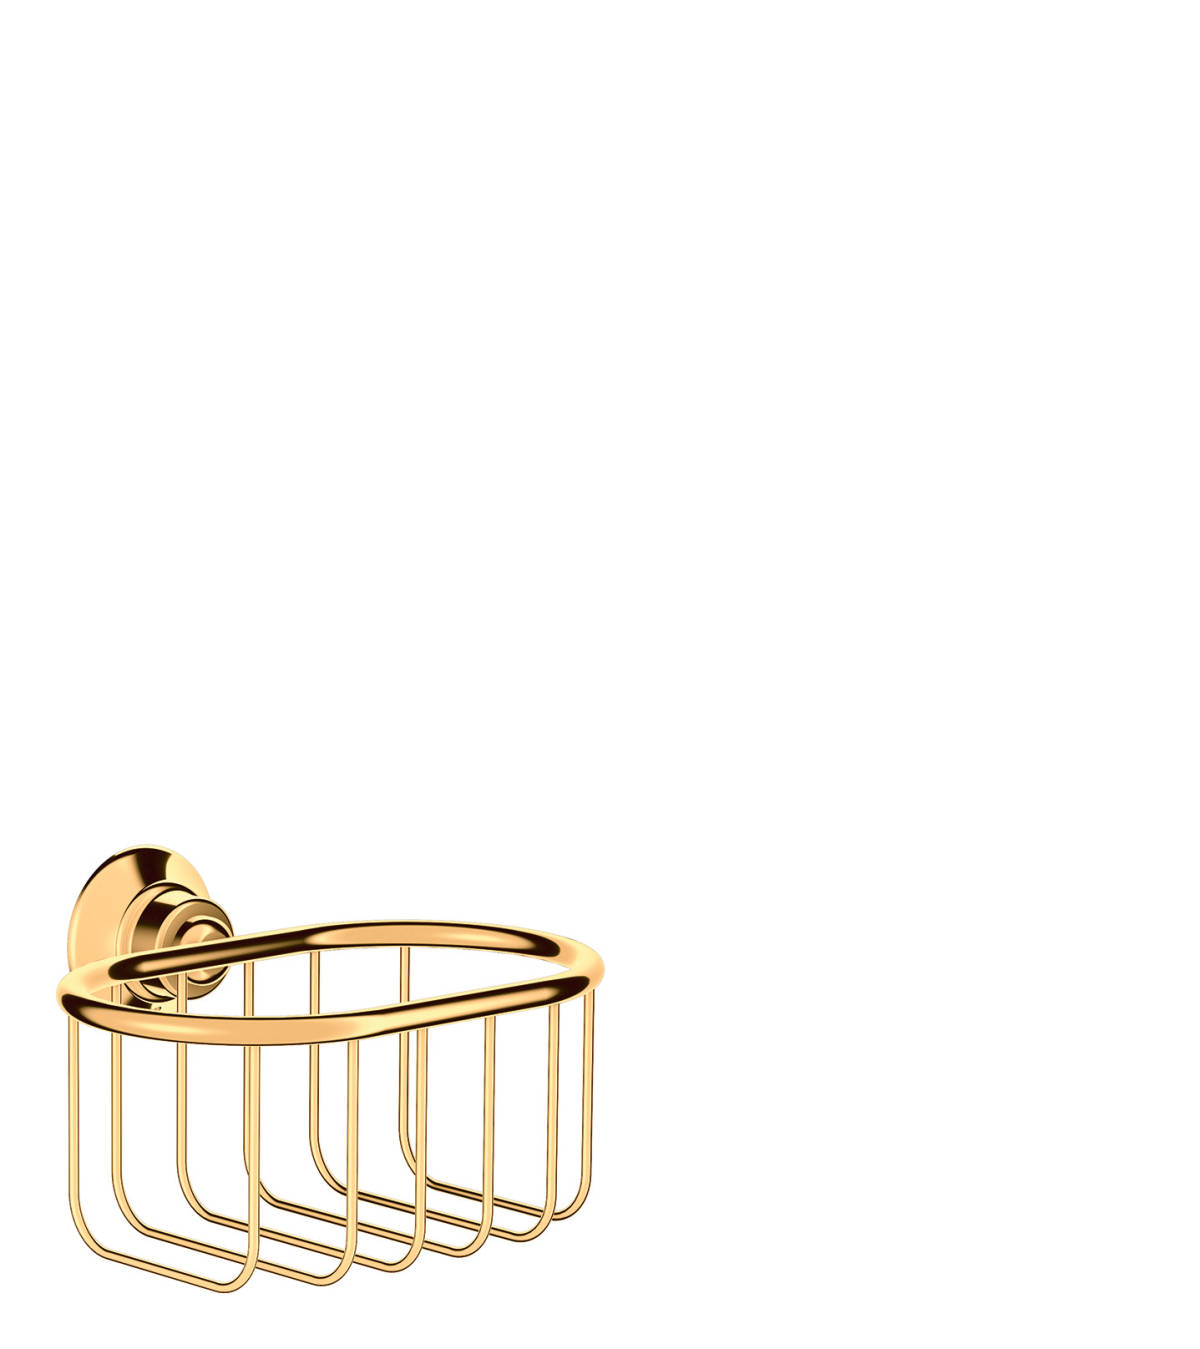 Corner basket 160/101, Polished Gold Optic, 42065990